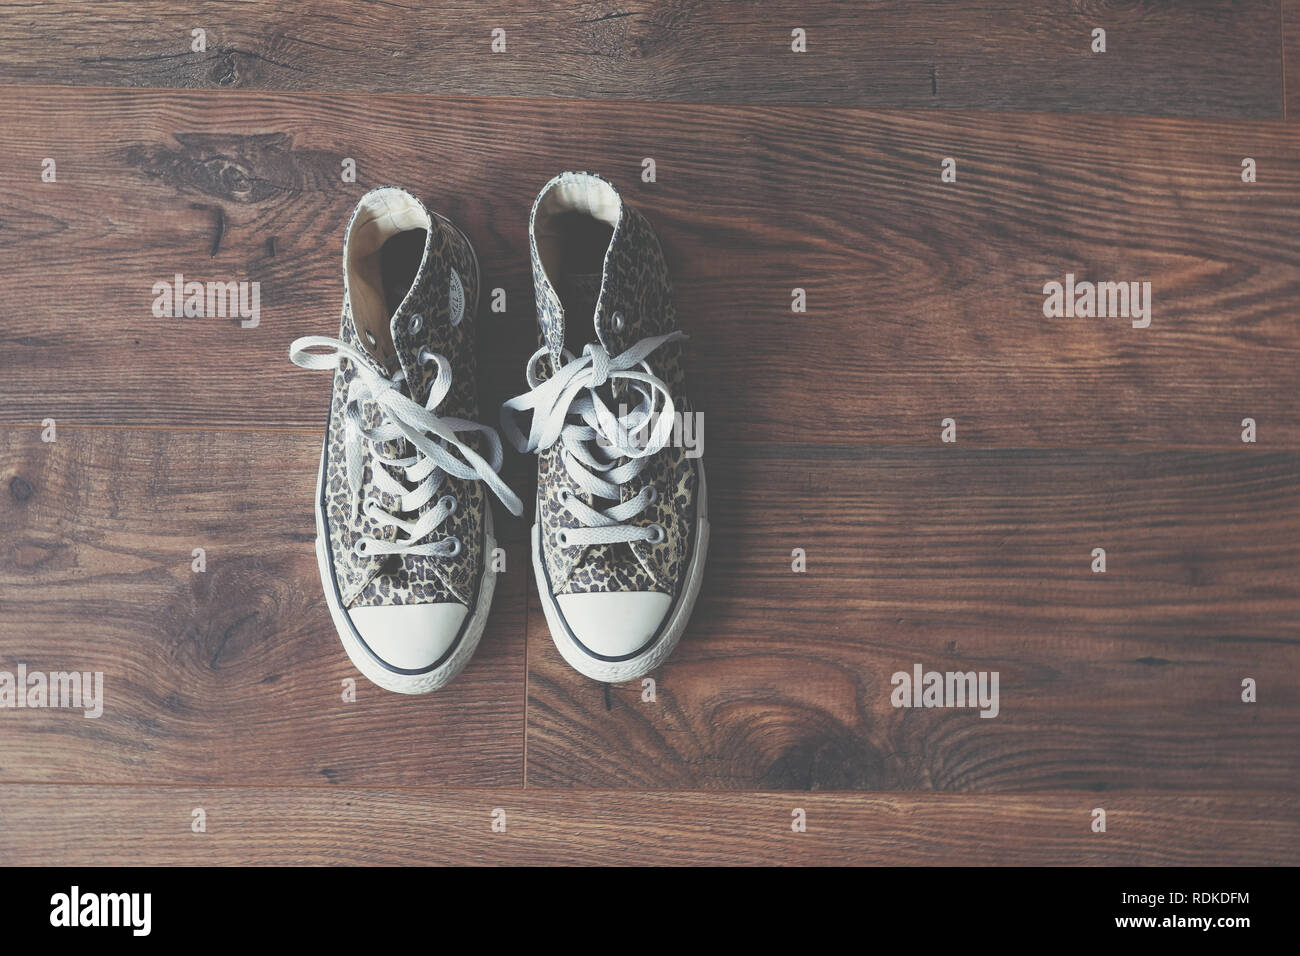 4ed353e3611f Leather Converse Stockfotos   Leather Converse Bilder - Alamy